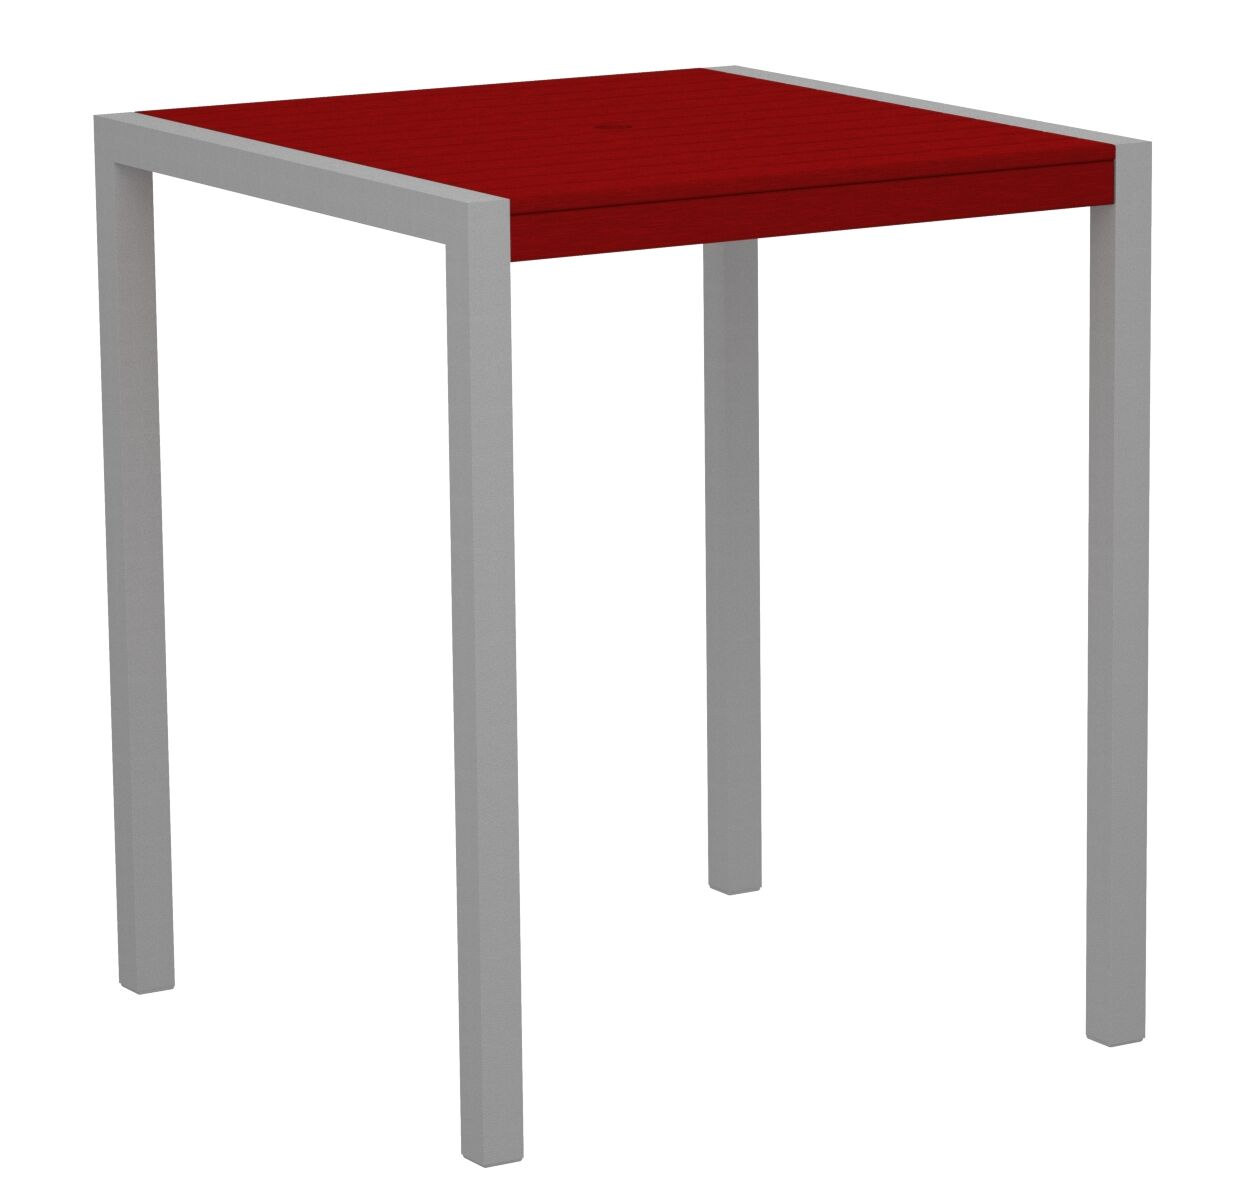 Mod Bar Table Base Finish: Textured Silver, Top Finish: Sunset Red